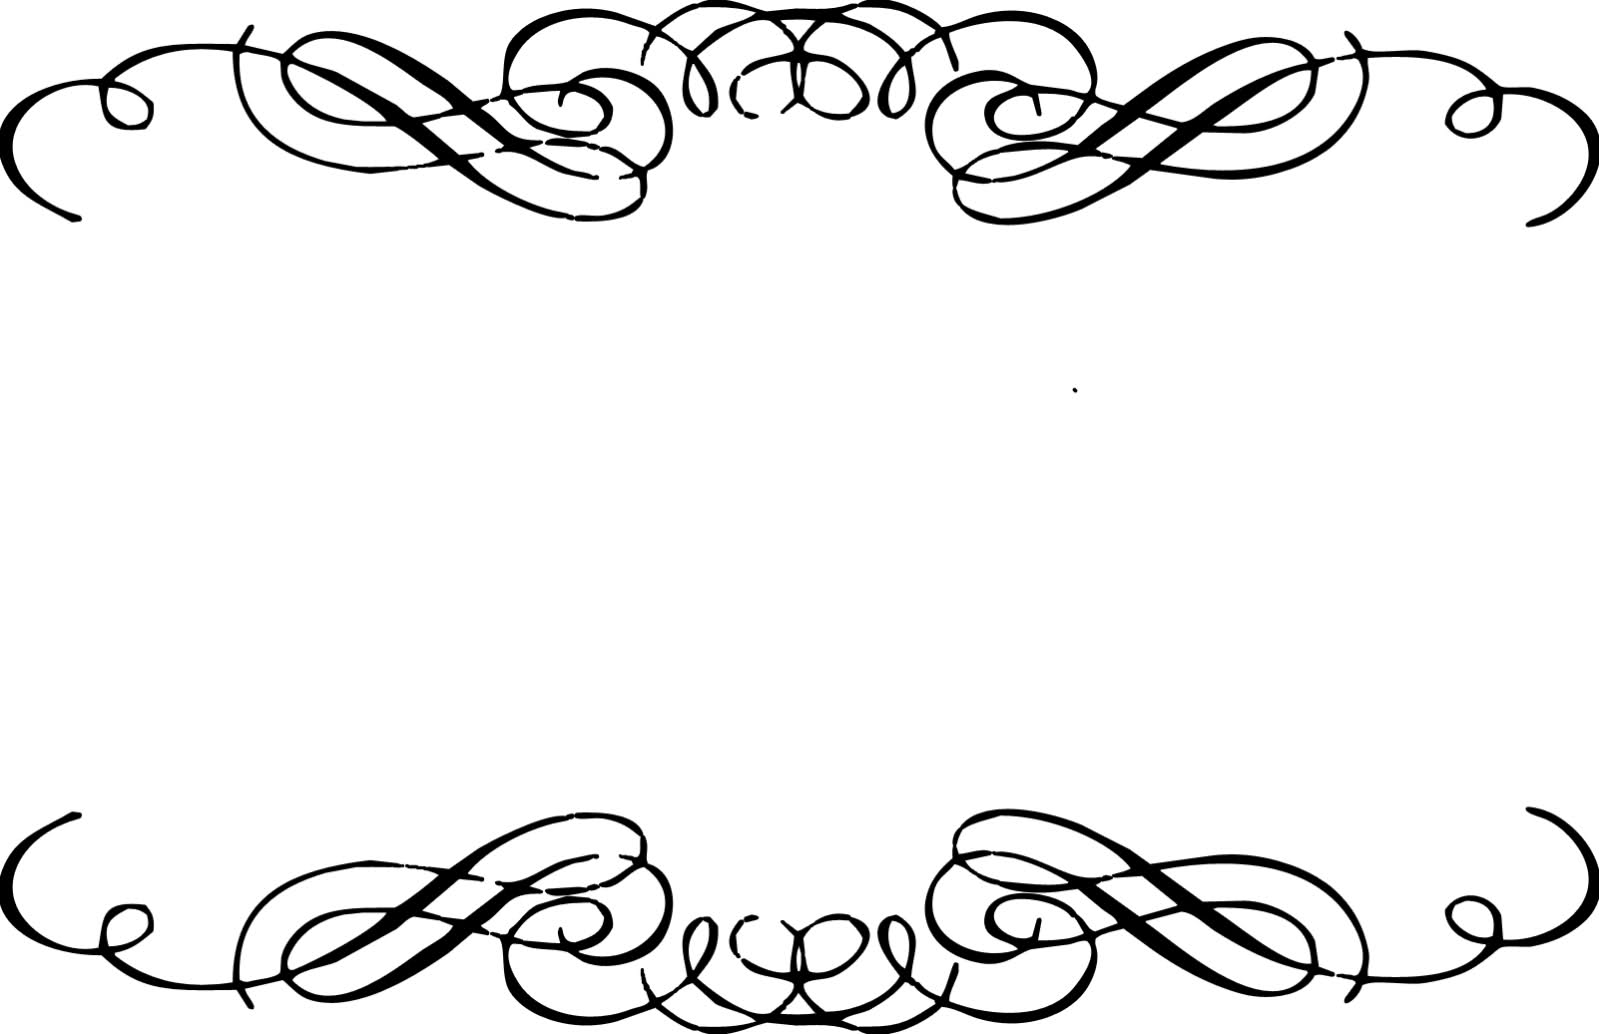 1599x1034 Fancy Squiggly Lines Clipart